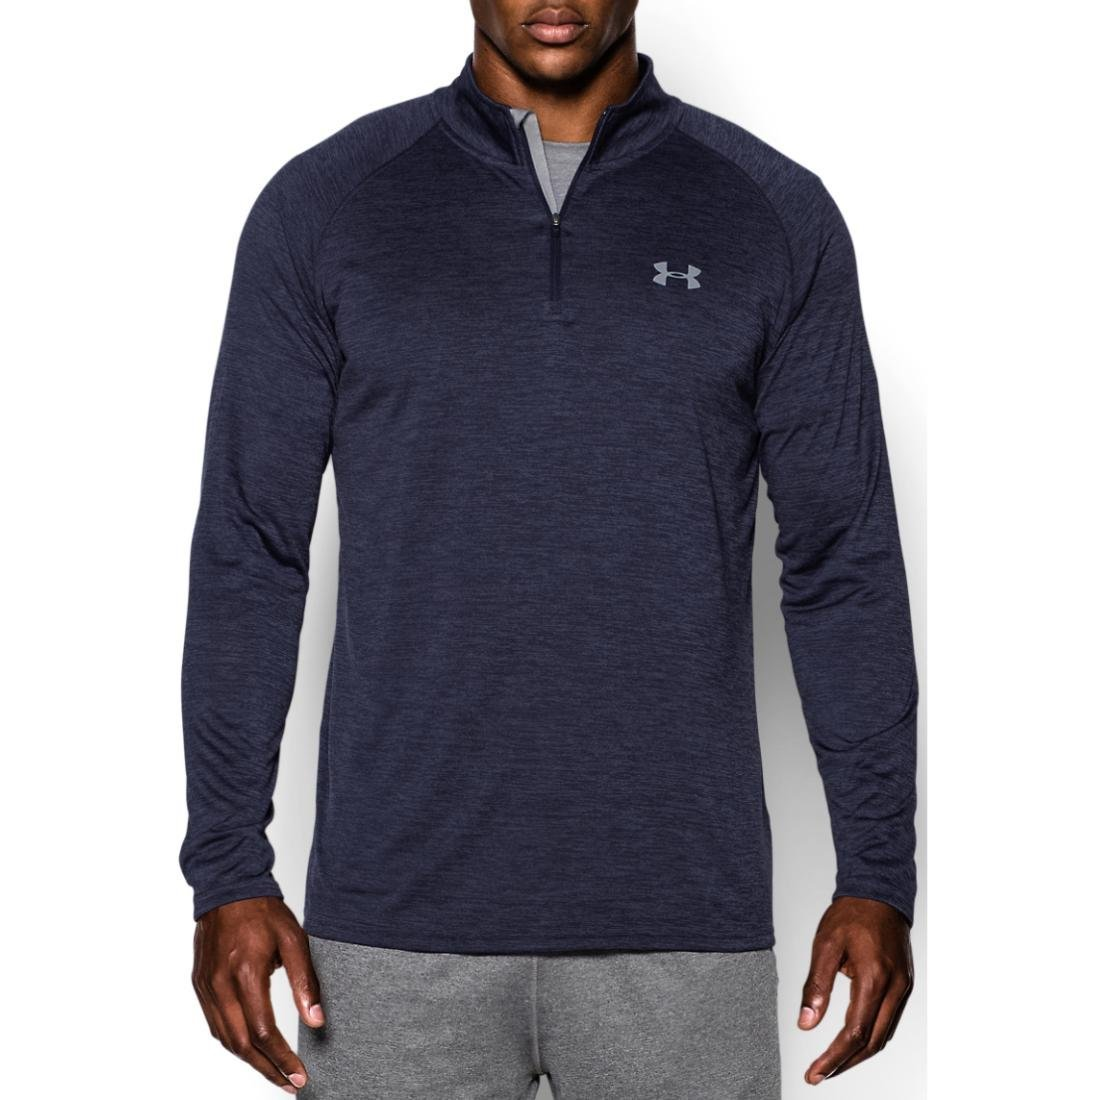 Under Armour - 1242220-414-NVY-L